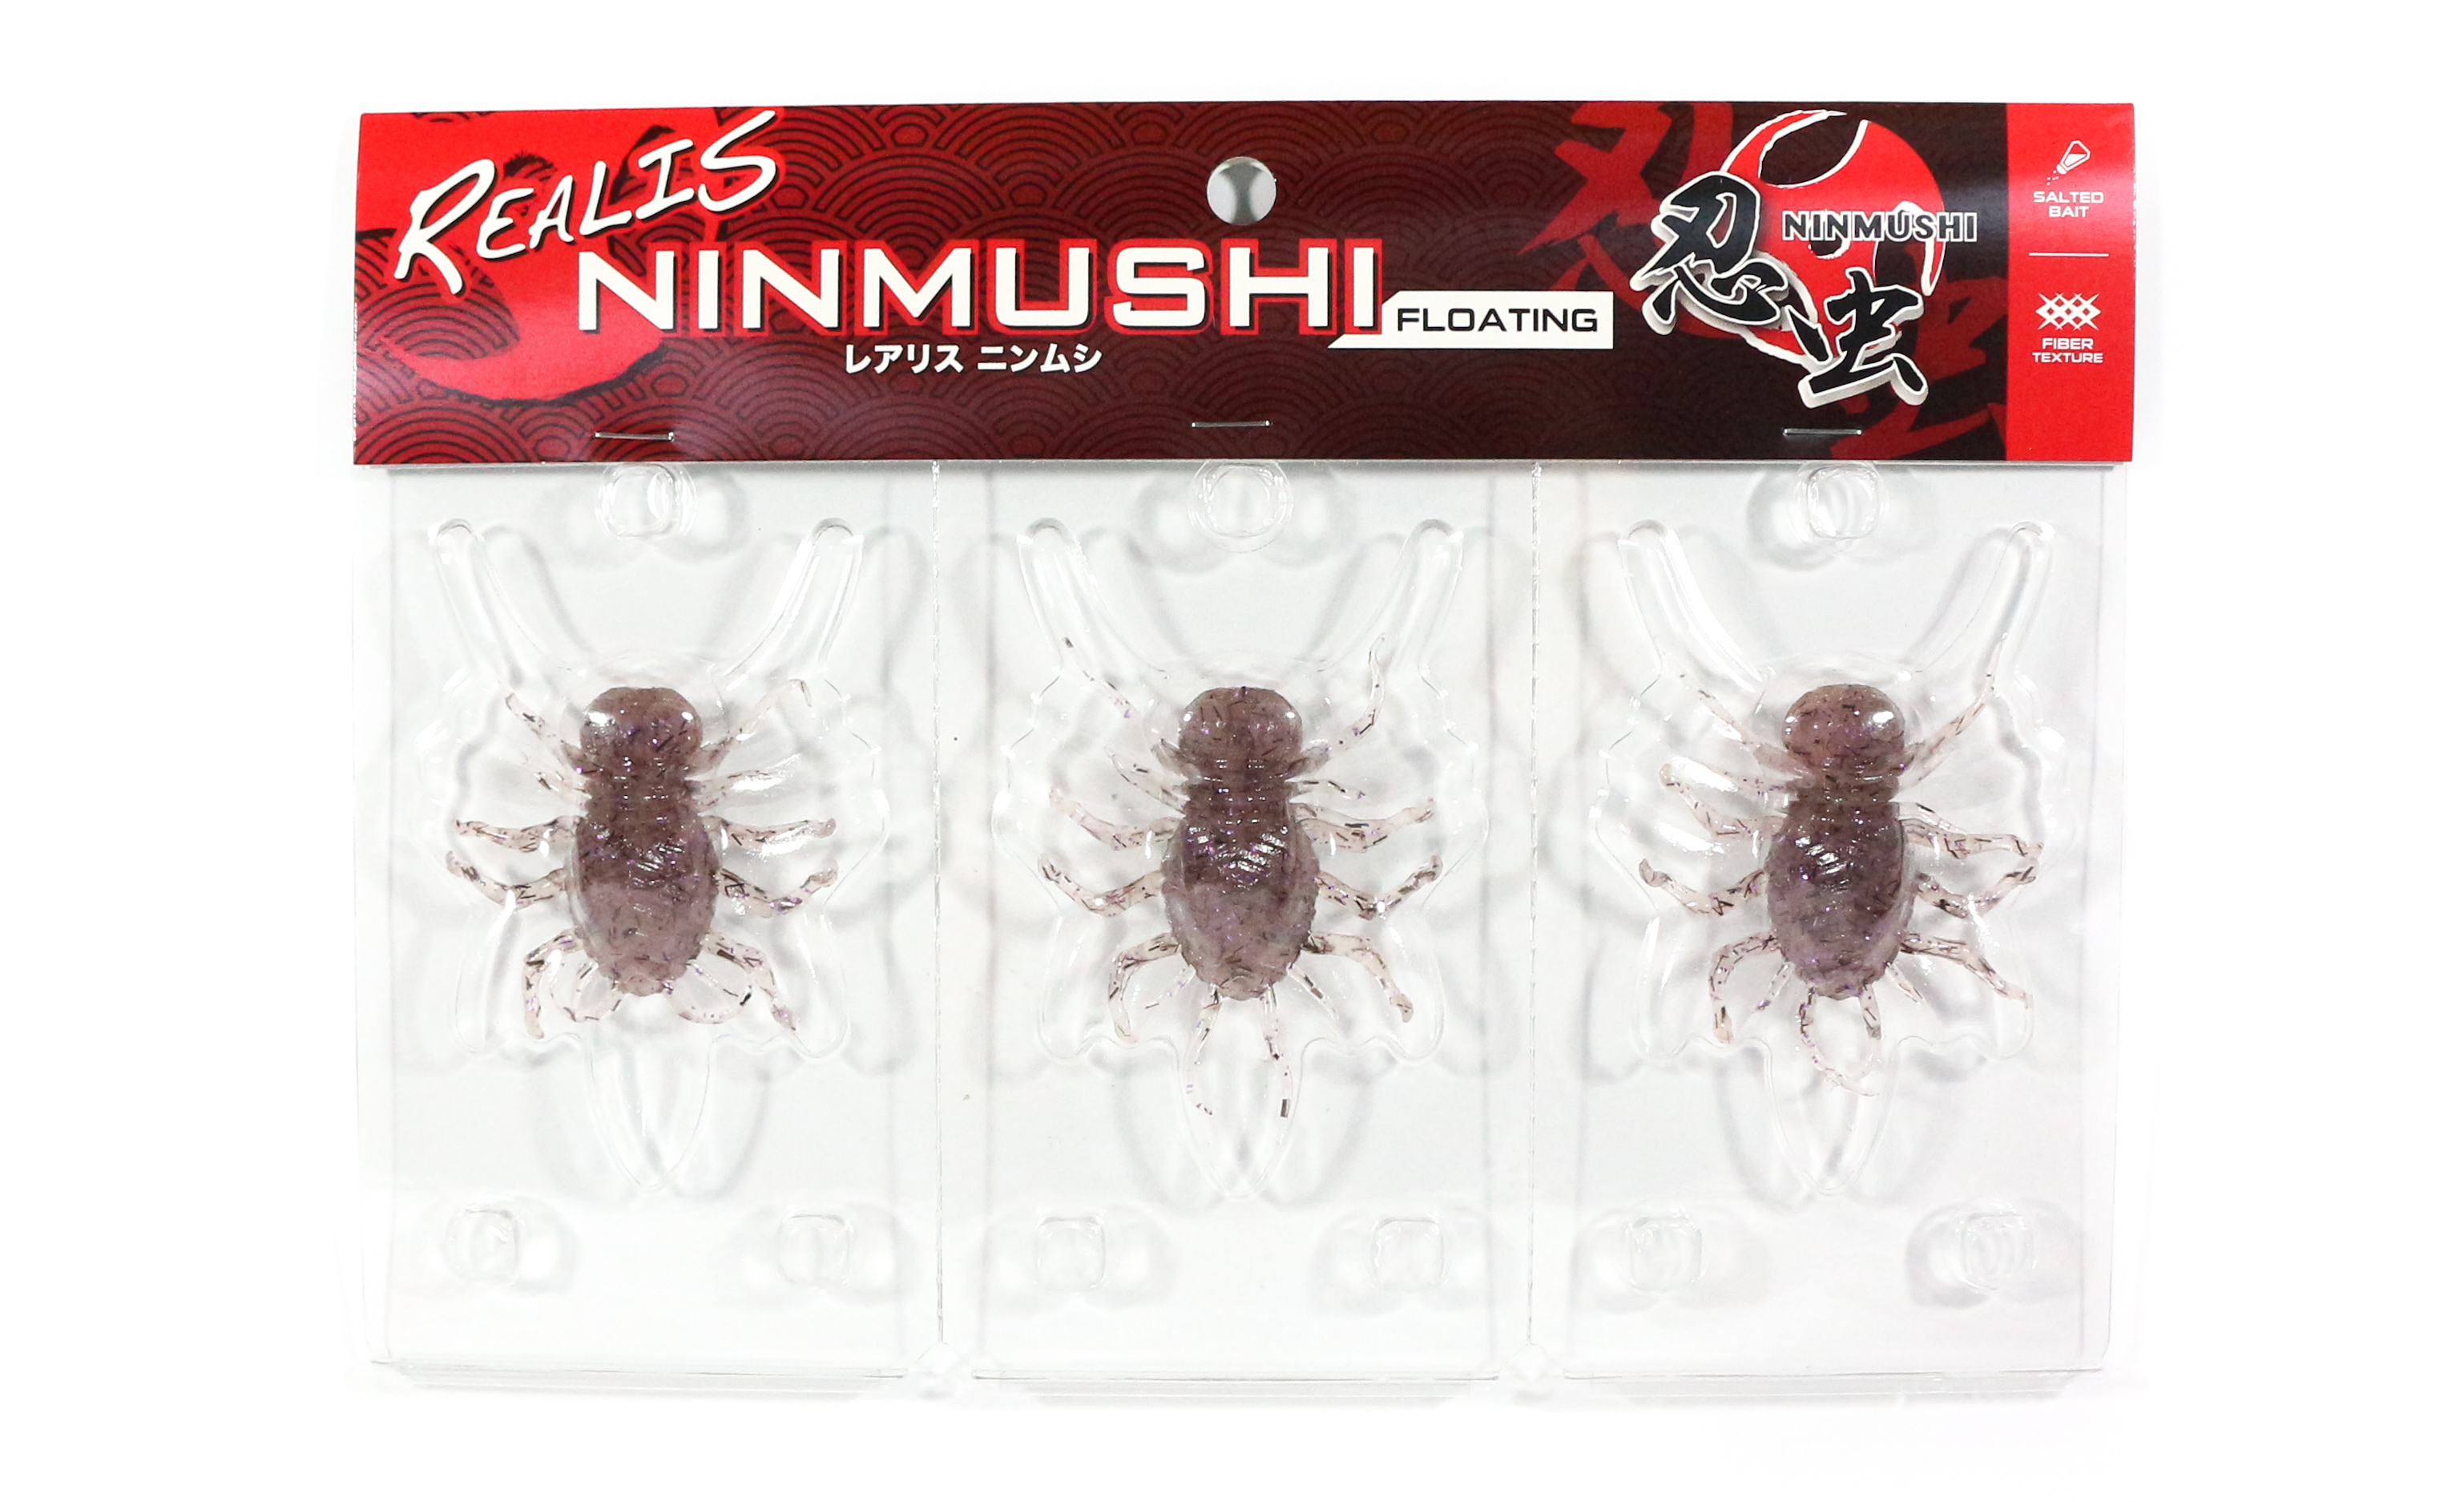 Duo Soft Lure Ninmushi Bug Floating Lure 3 piece pack F615 (6923)